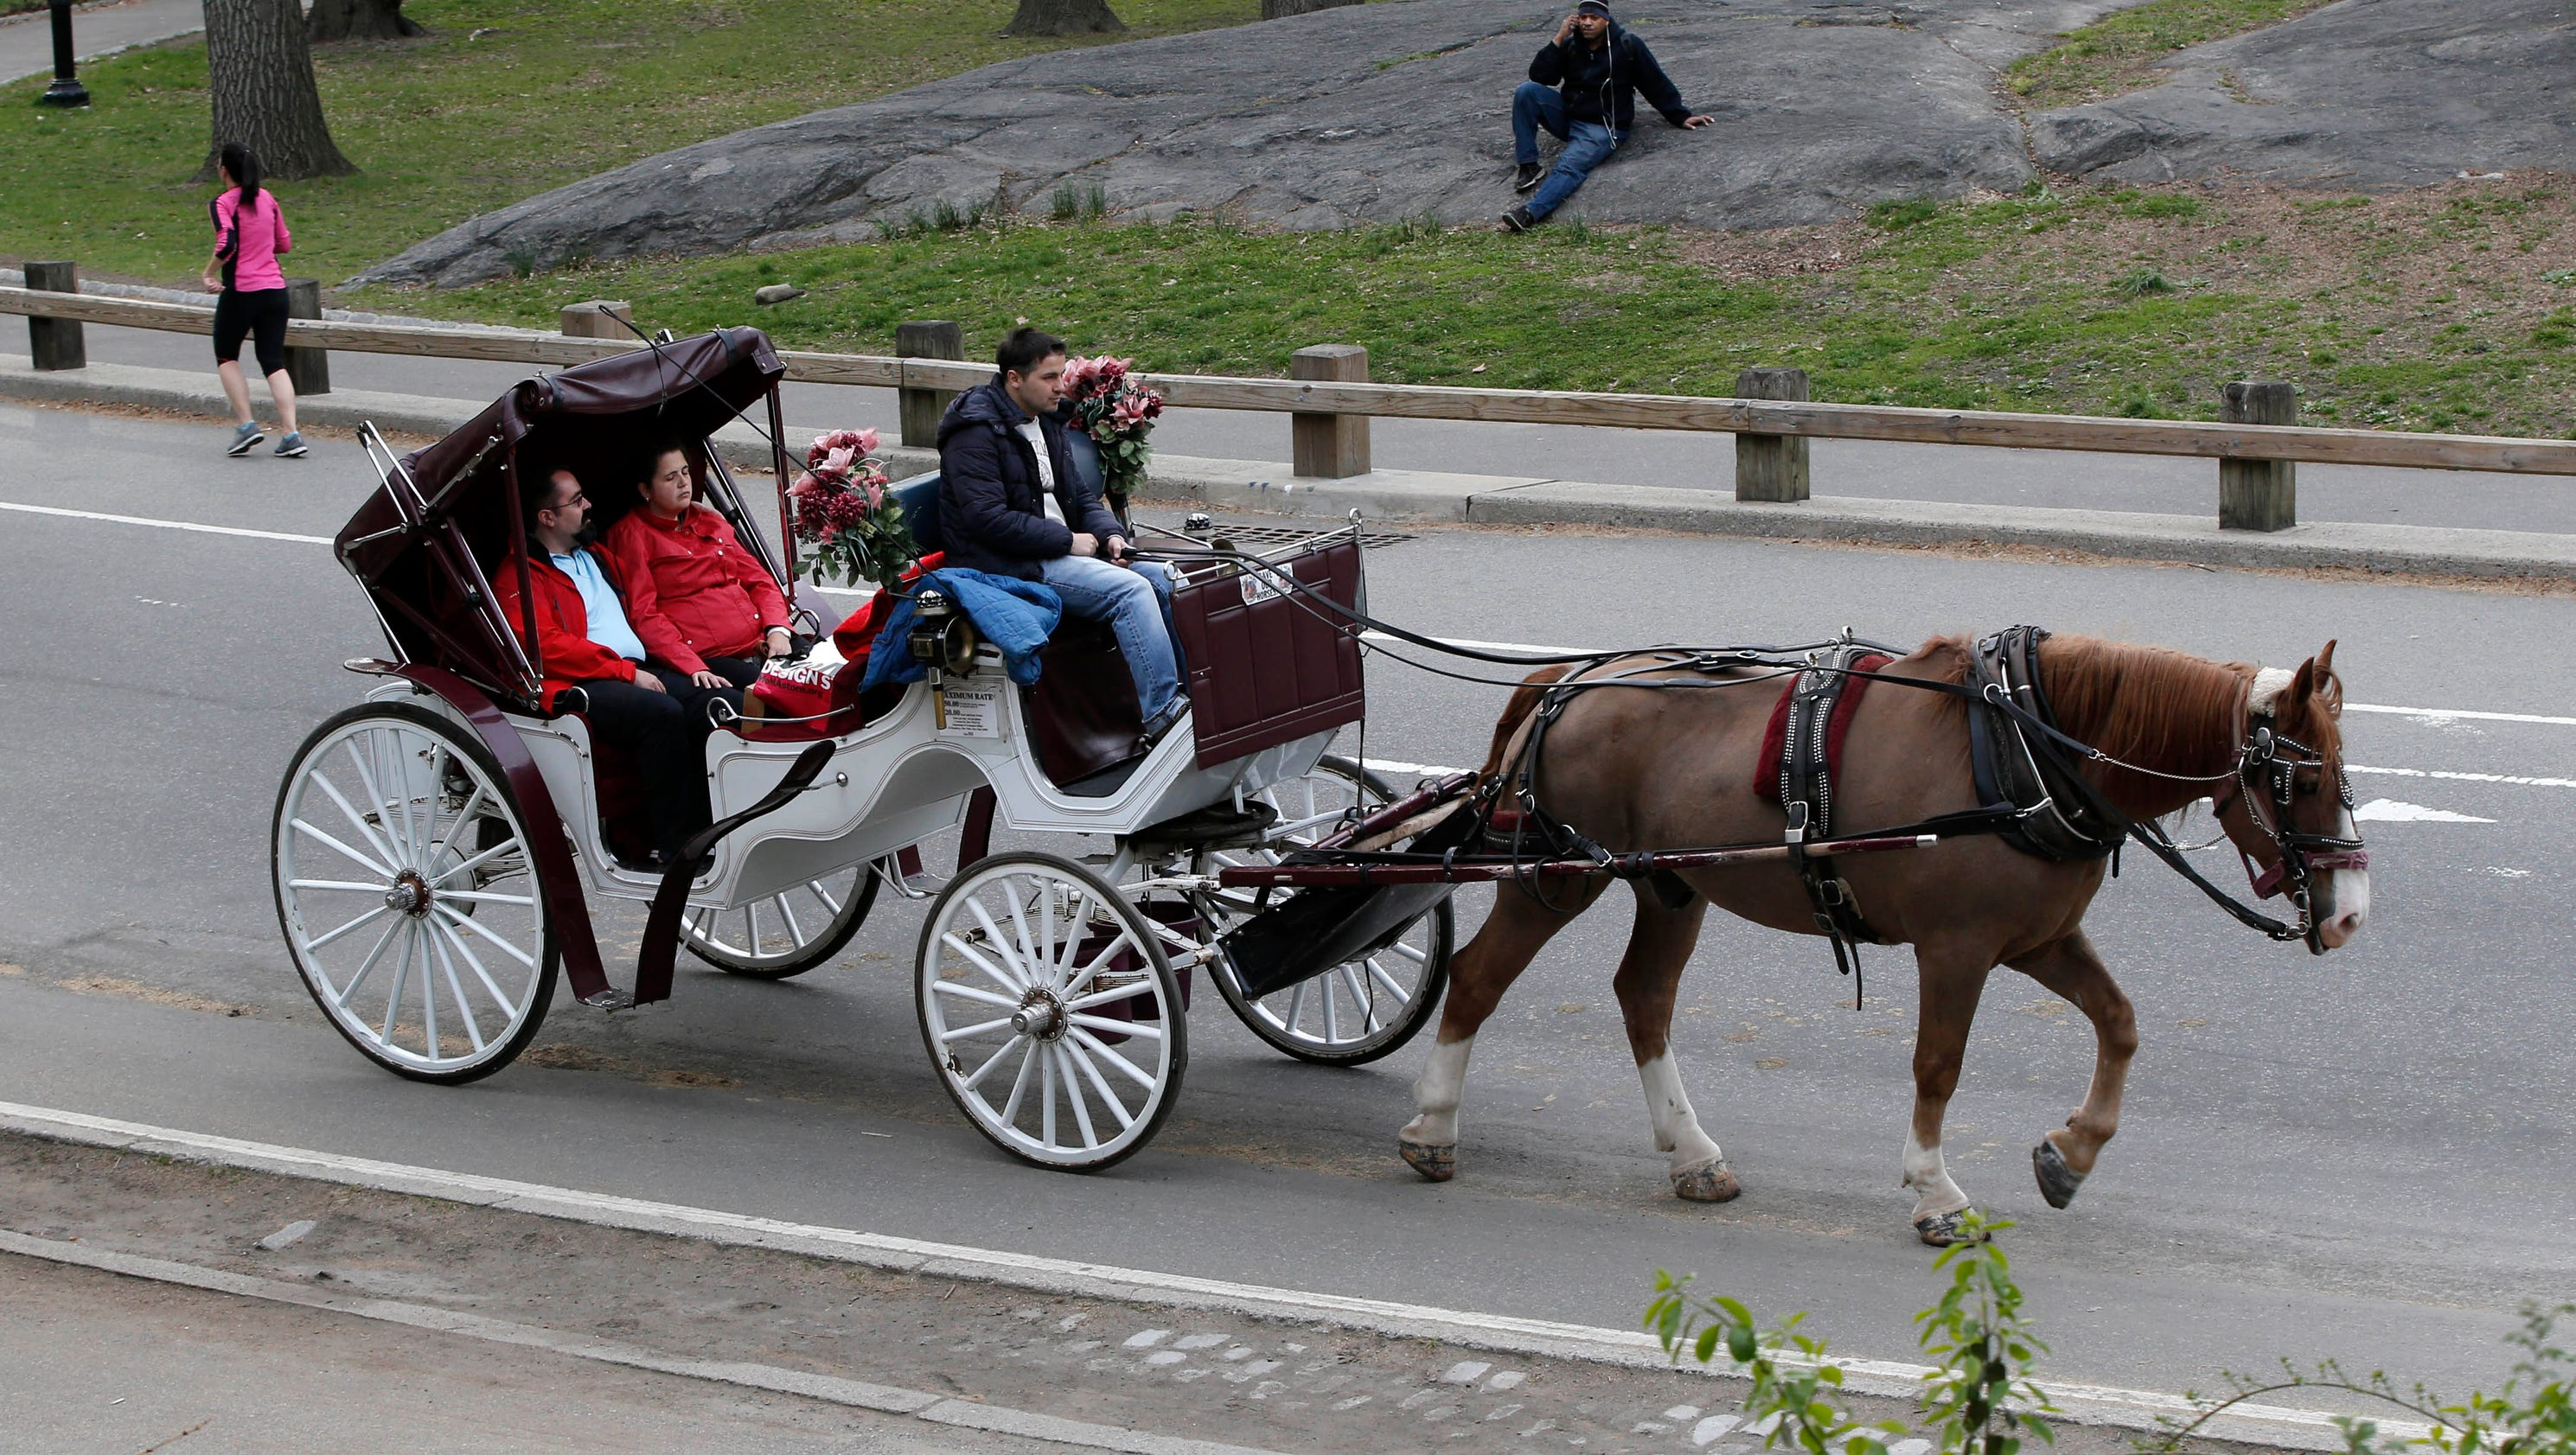 Horse Drawn Carriages Still A Bane For Ny Mayor